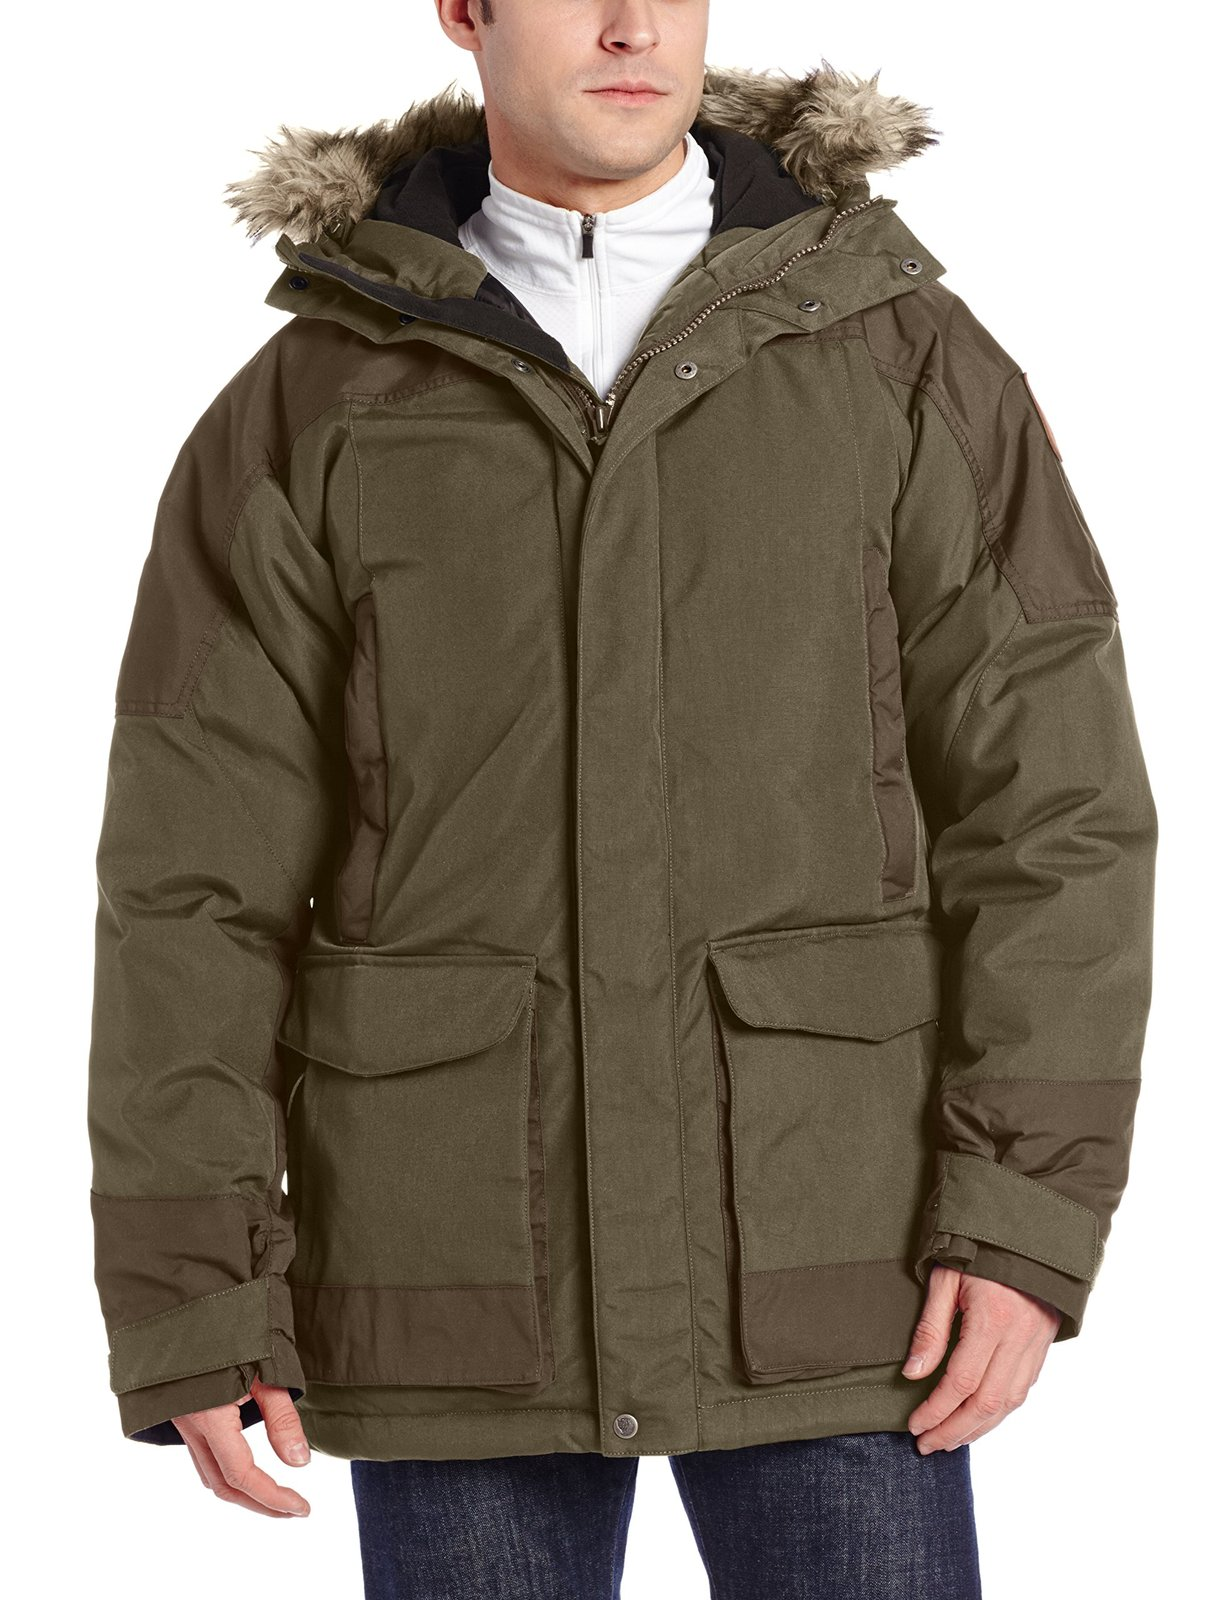 Fjallraven Men's Kyl Parka, Medium, Dark Olive